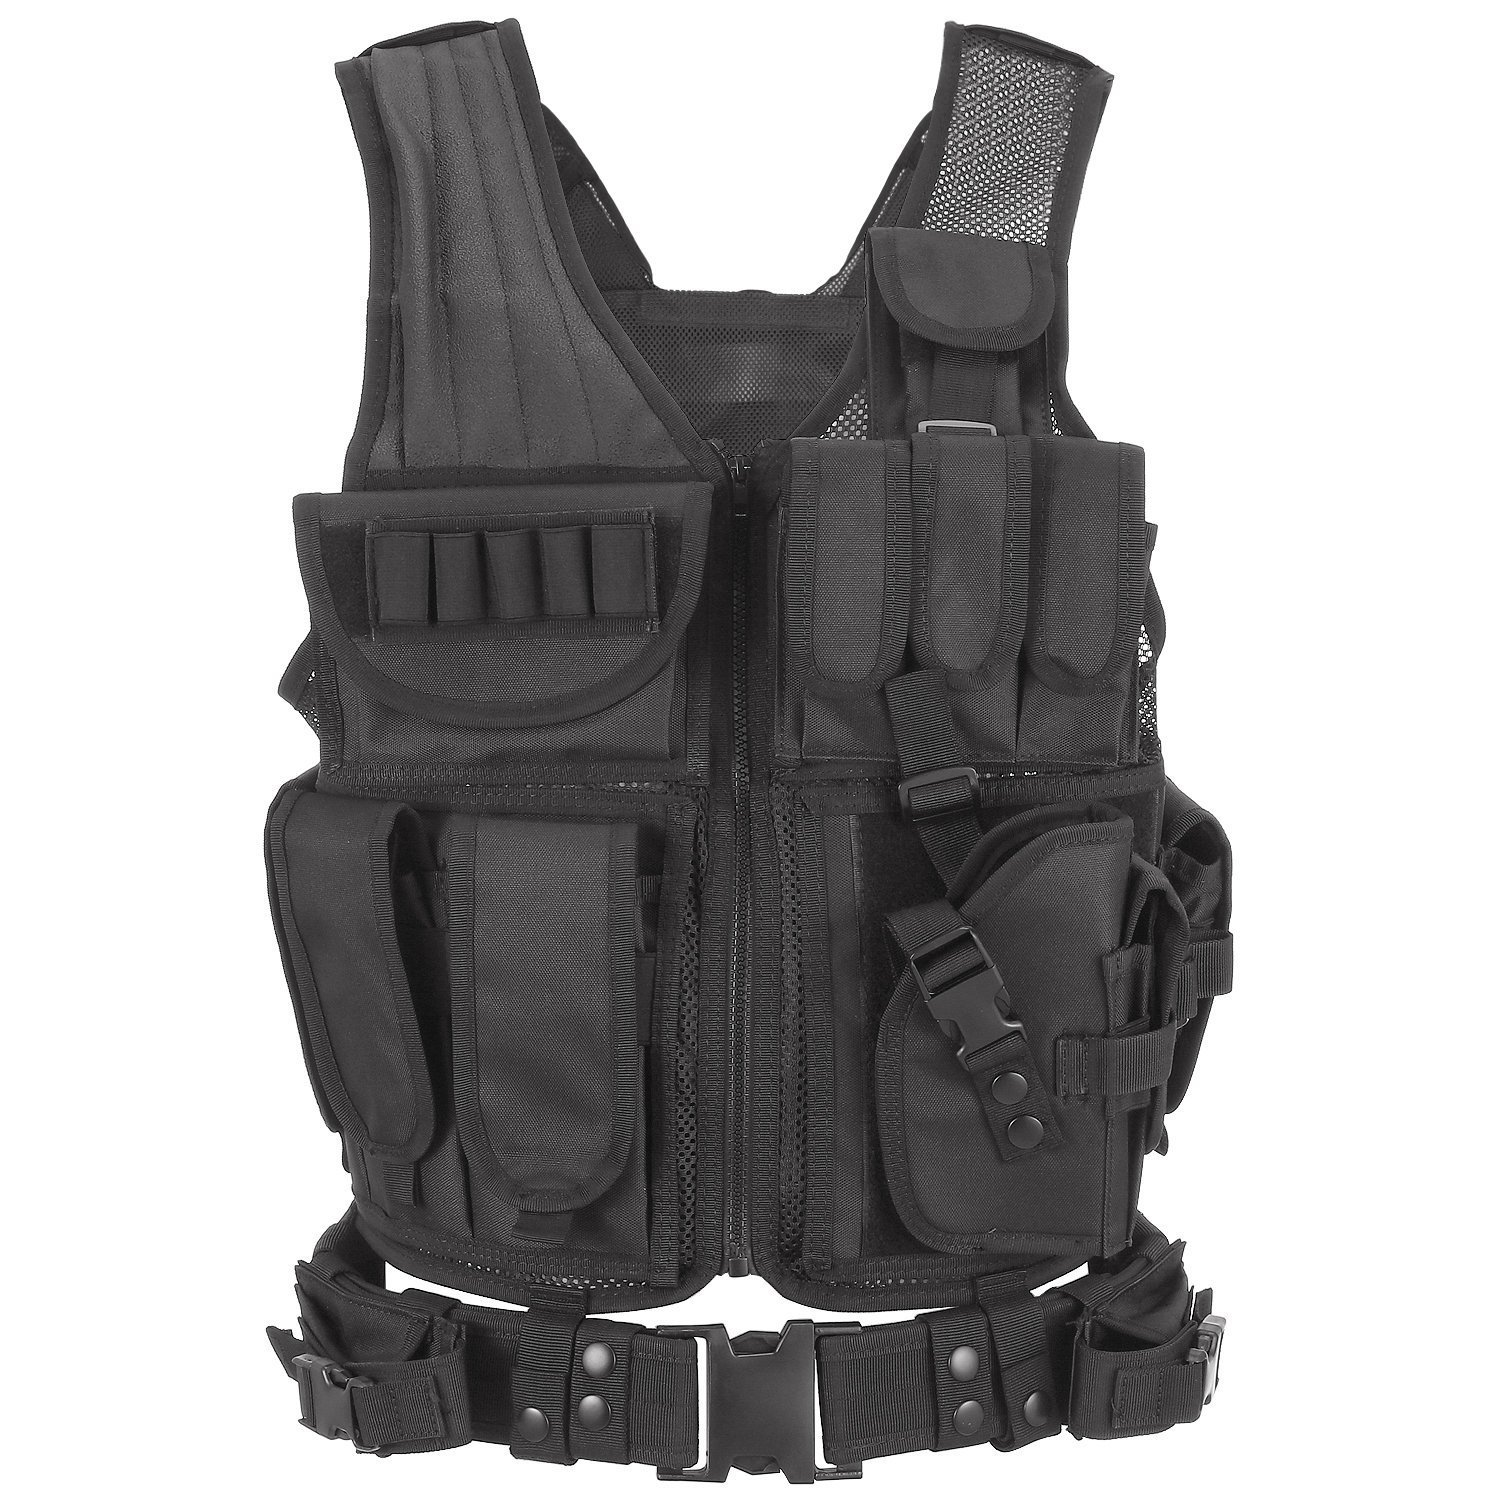 Tactical Vest Vemico Multifunctional Outdoor Ultra-light Breathable training Vest for Special Mission Combat Training Field Operations and Military Fans by Vemico